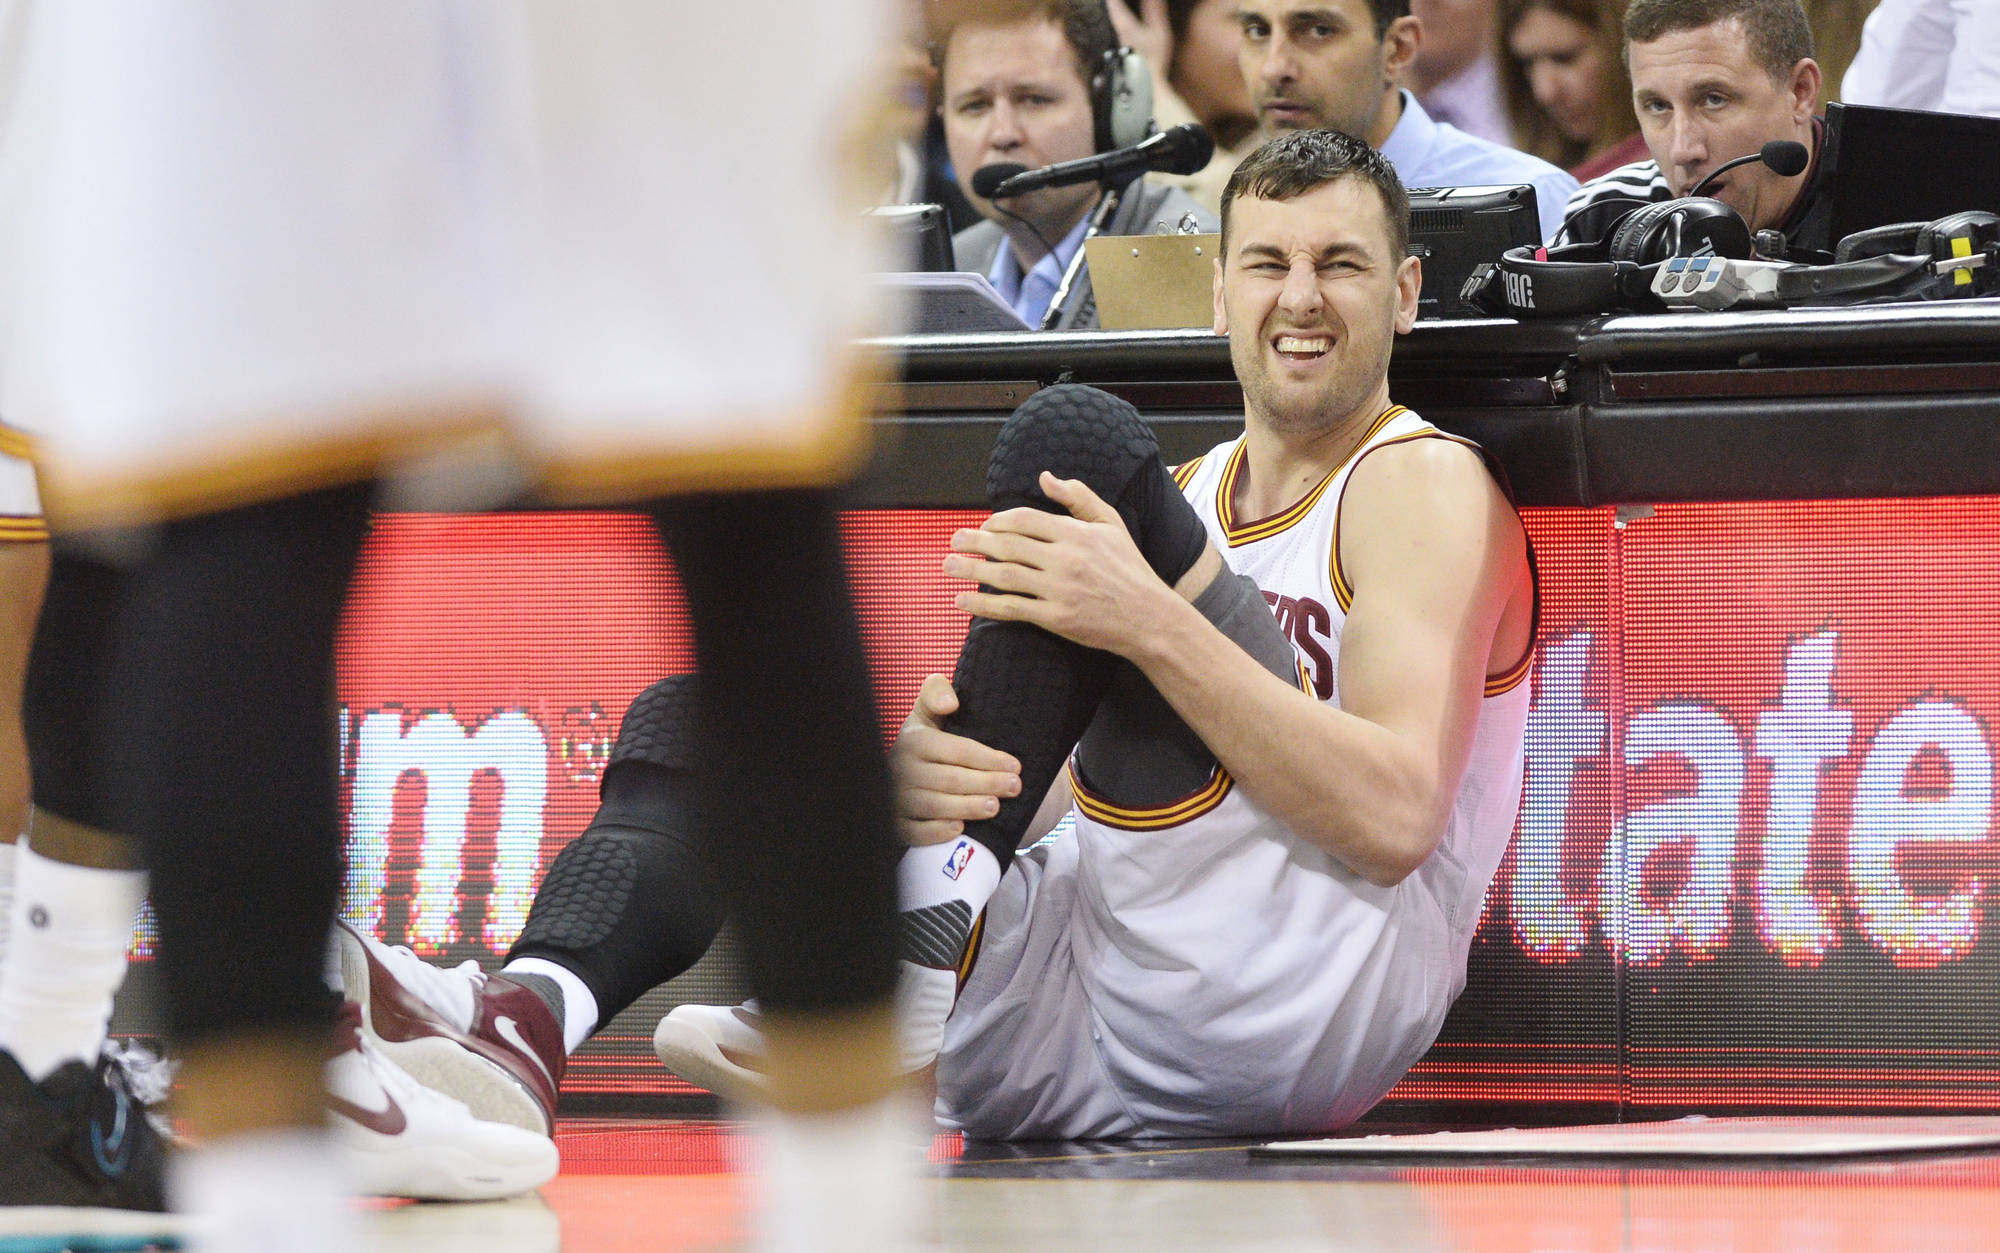 Andrew Bogut Sufferes Leg Injury 1 minute into Cavaliers Debut.